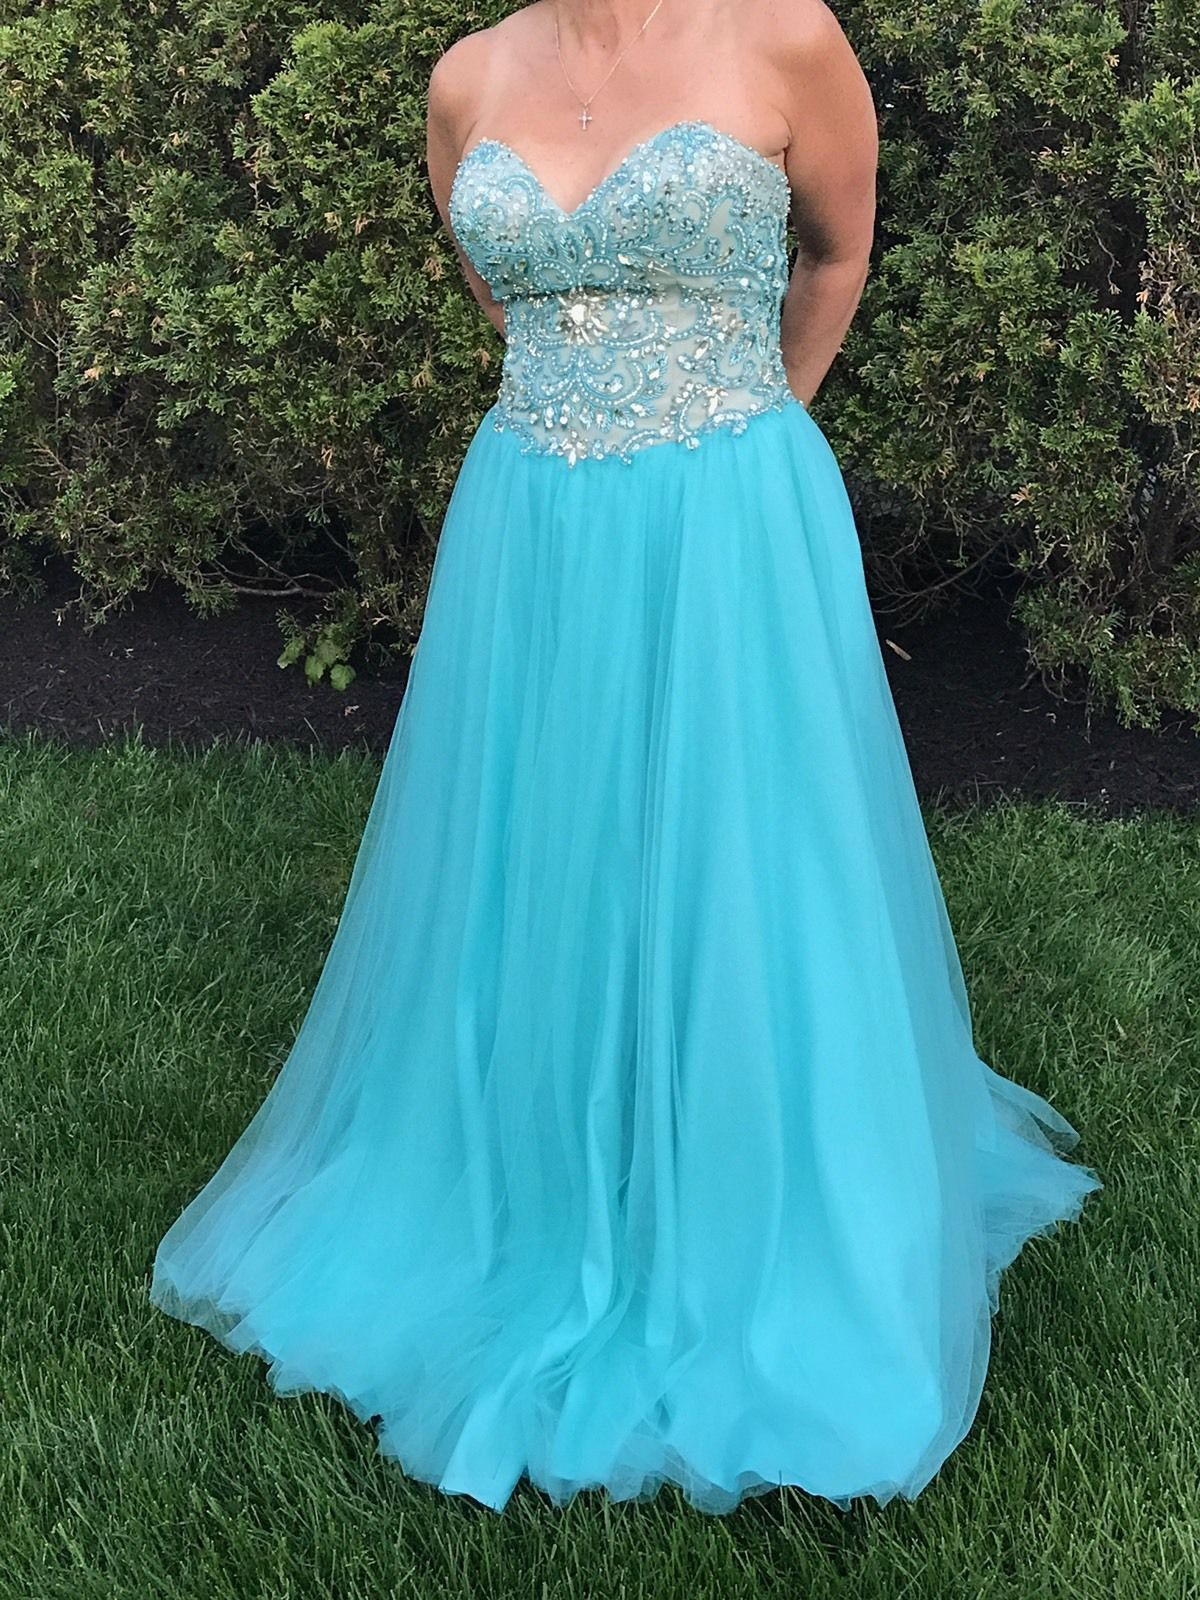 Nice terani couture tulle beaded ball gown formal prom quinceanera